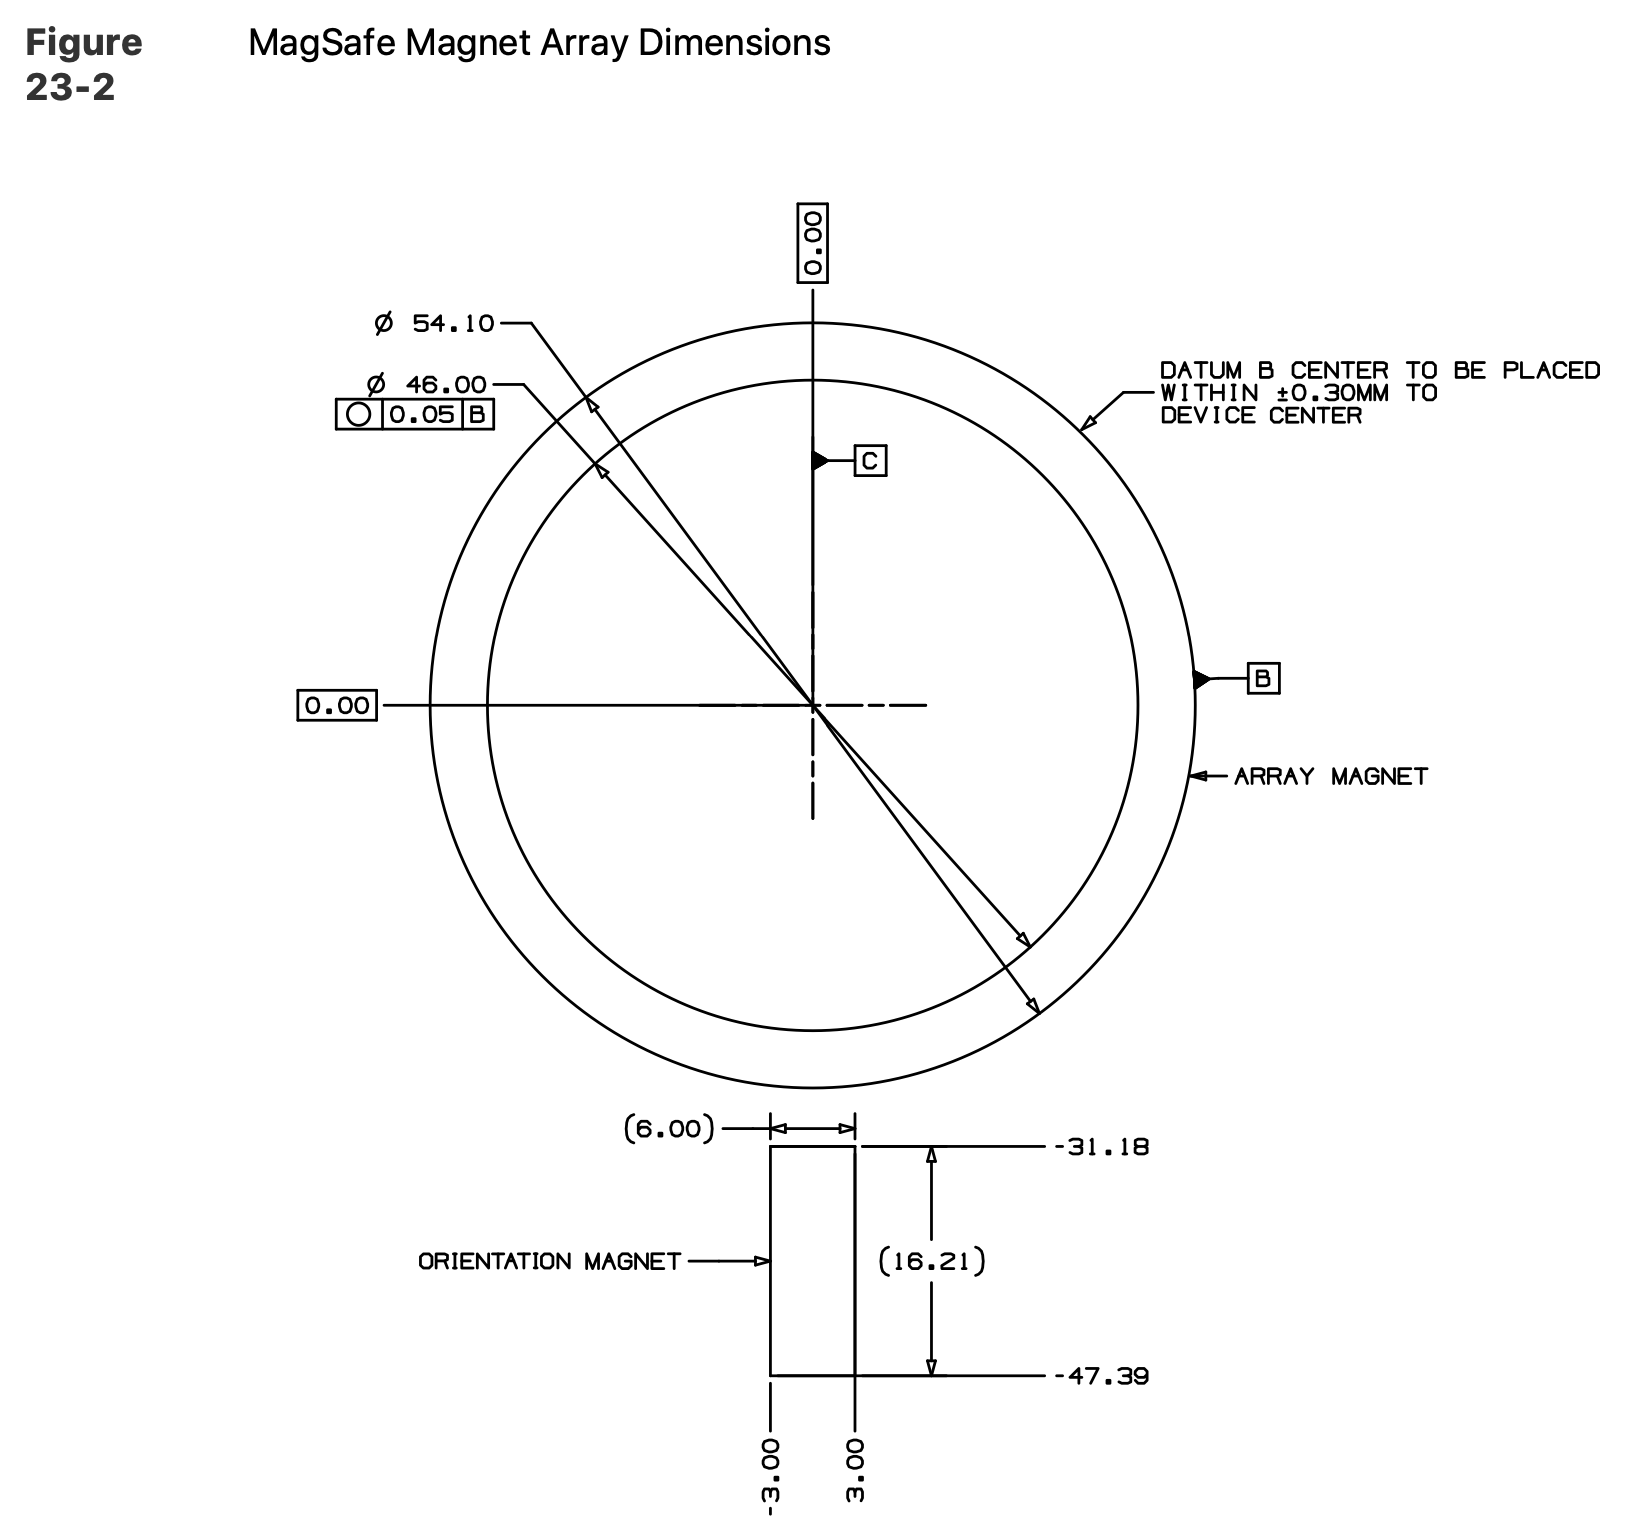 Magsafe magnet array dimensions